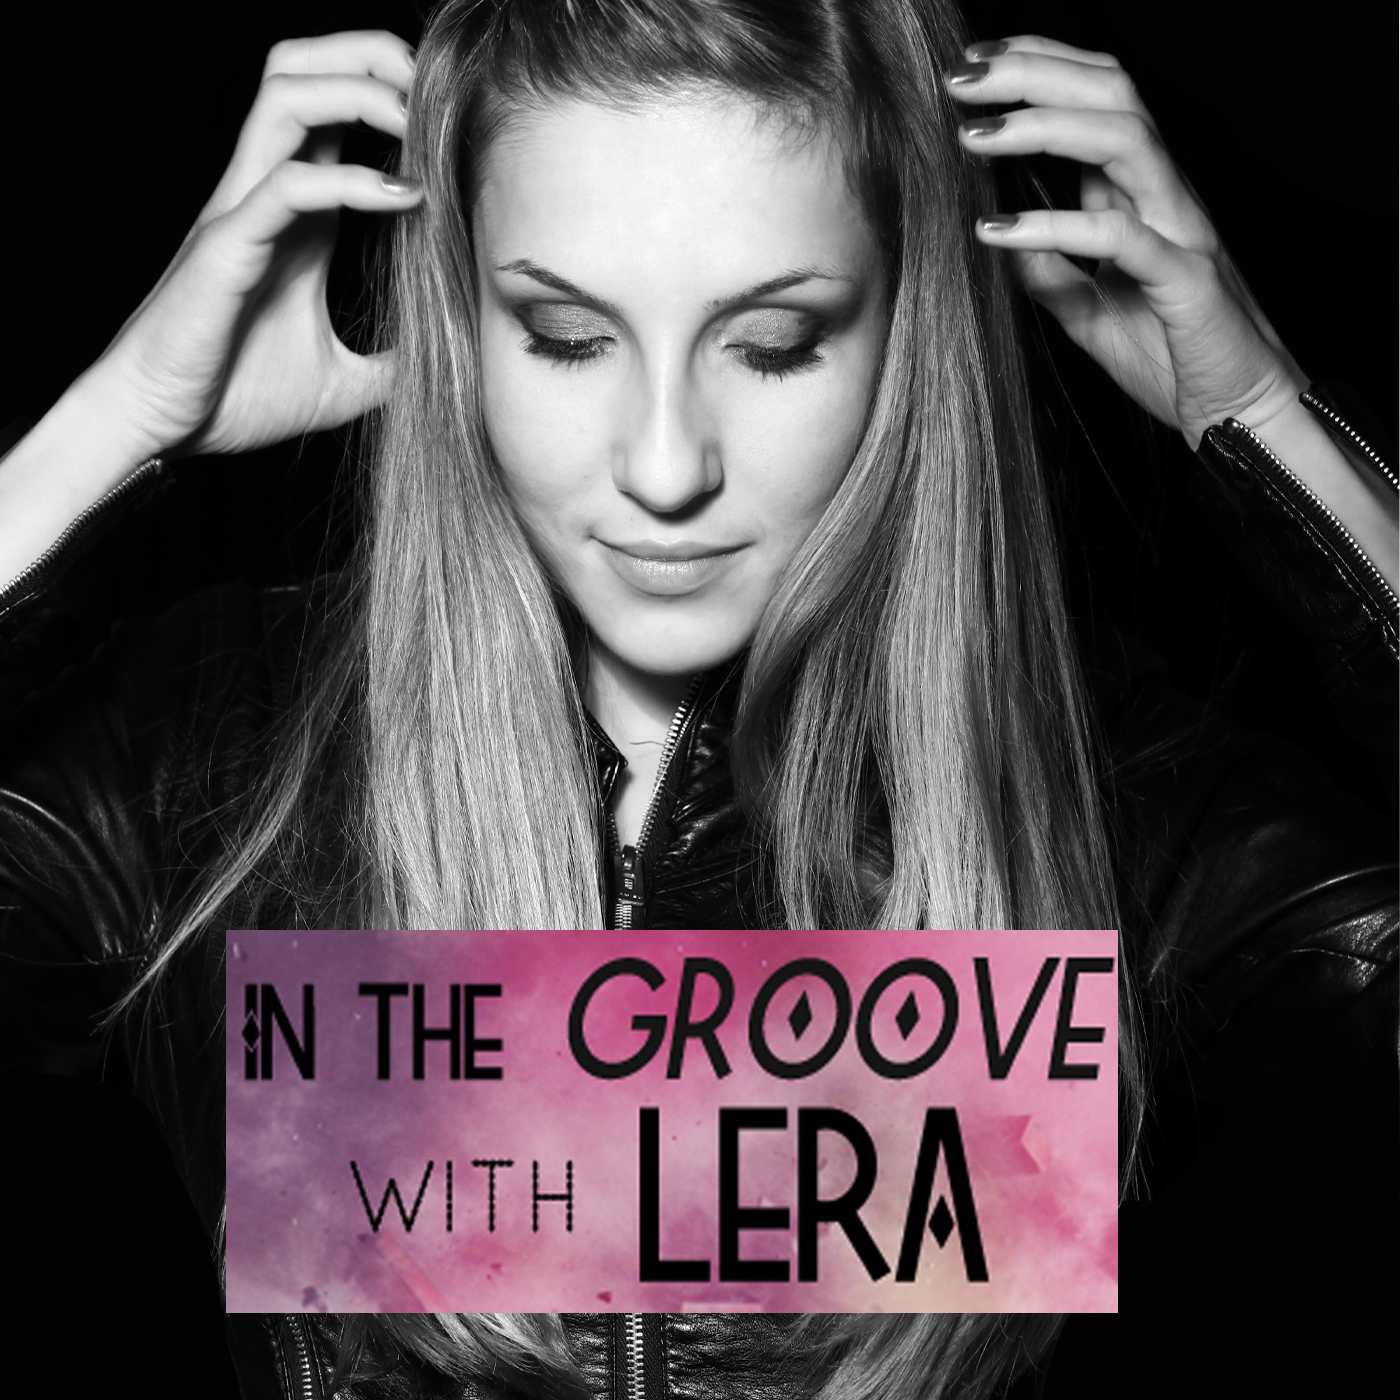 In the groove with Lera